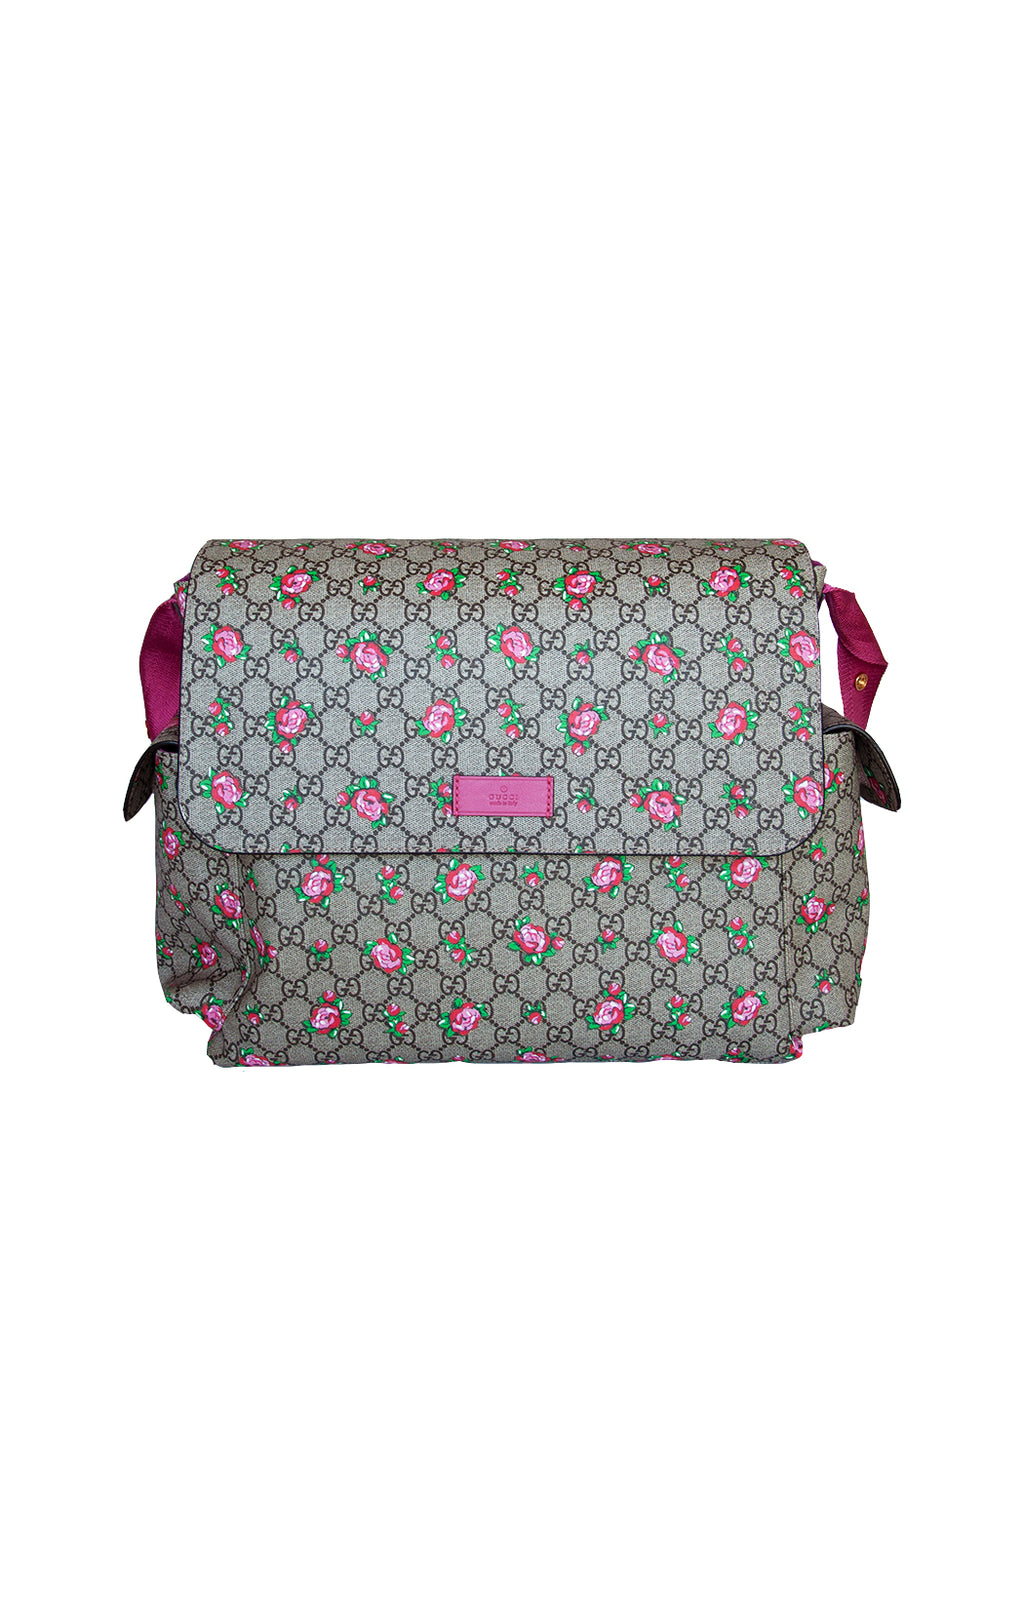 Front view of GUCCI Diaper Bag Size: 17 in. x 13 in. x 6 in.